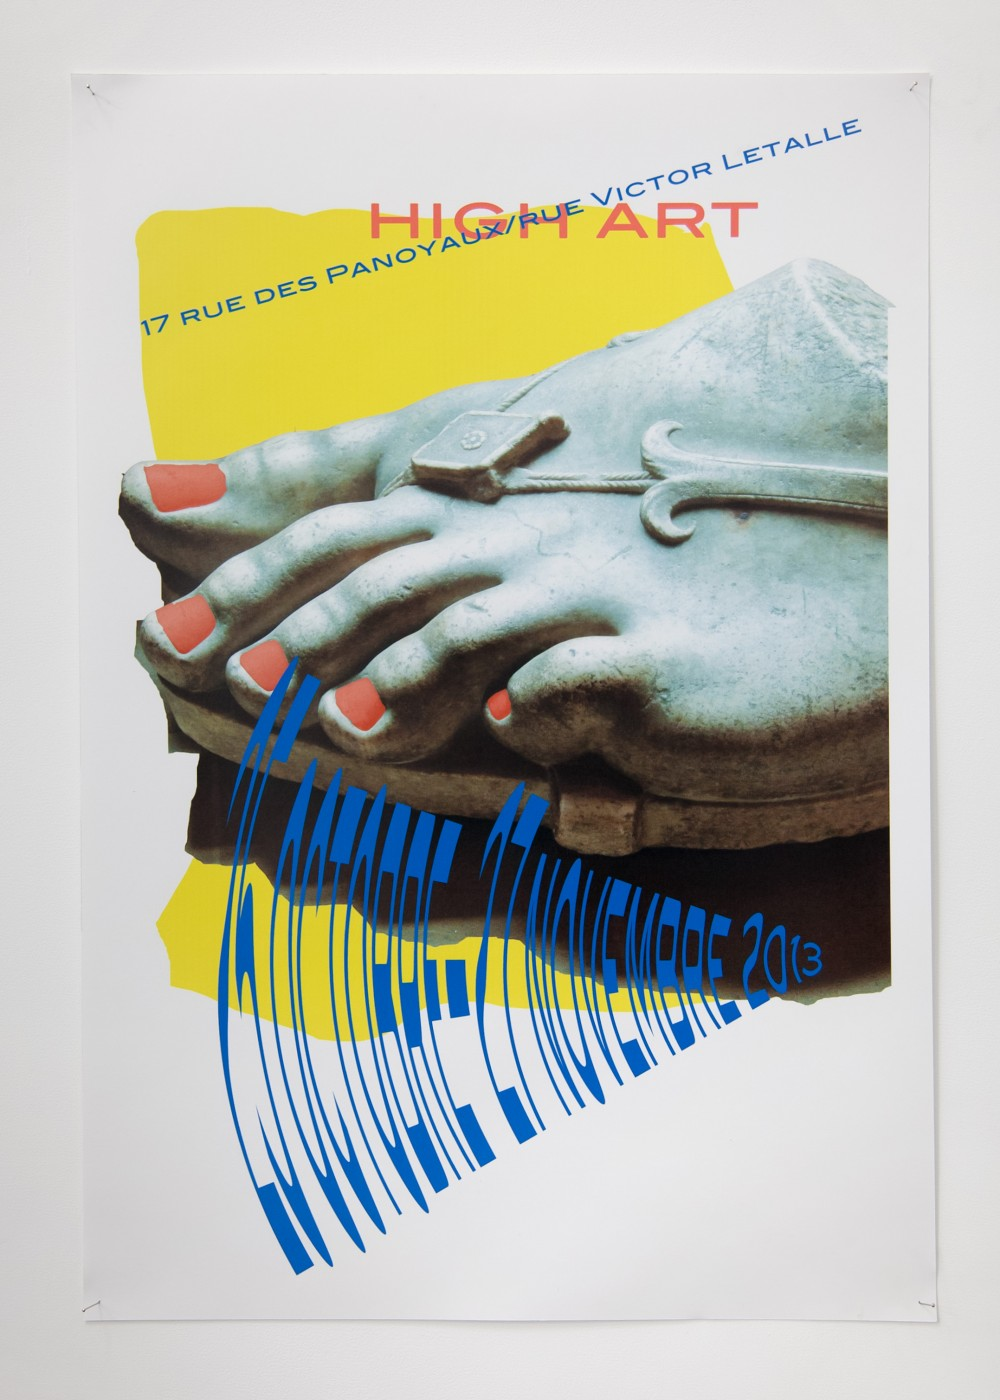 ♥ Allison Katz,  High Art , 2013   Inkjet on poster   60 x 40 cm / 23.6 x 15.7 in OLGA BALEMA 